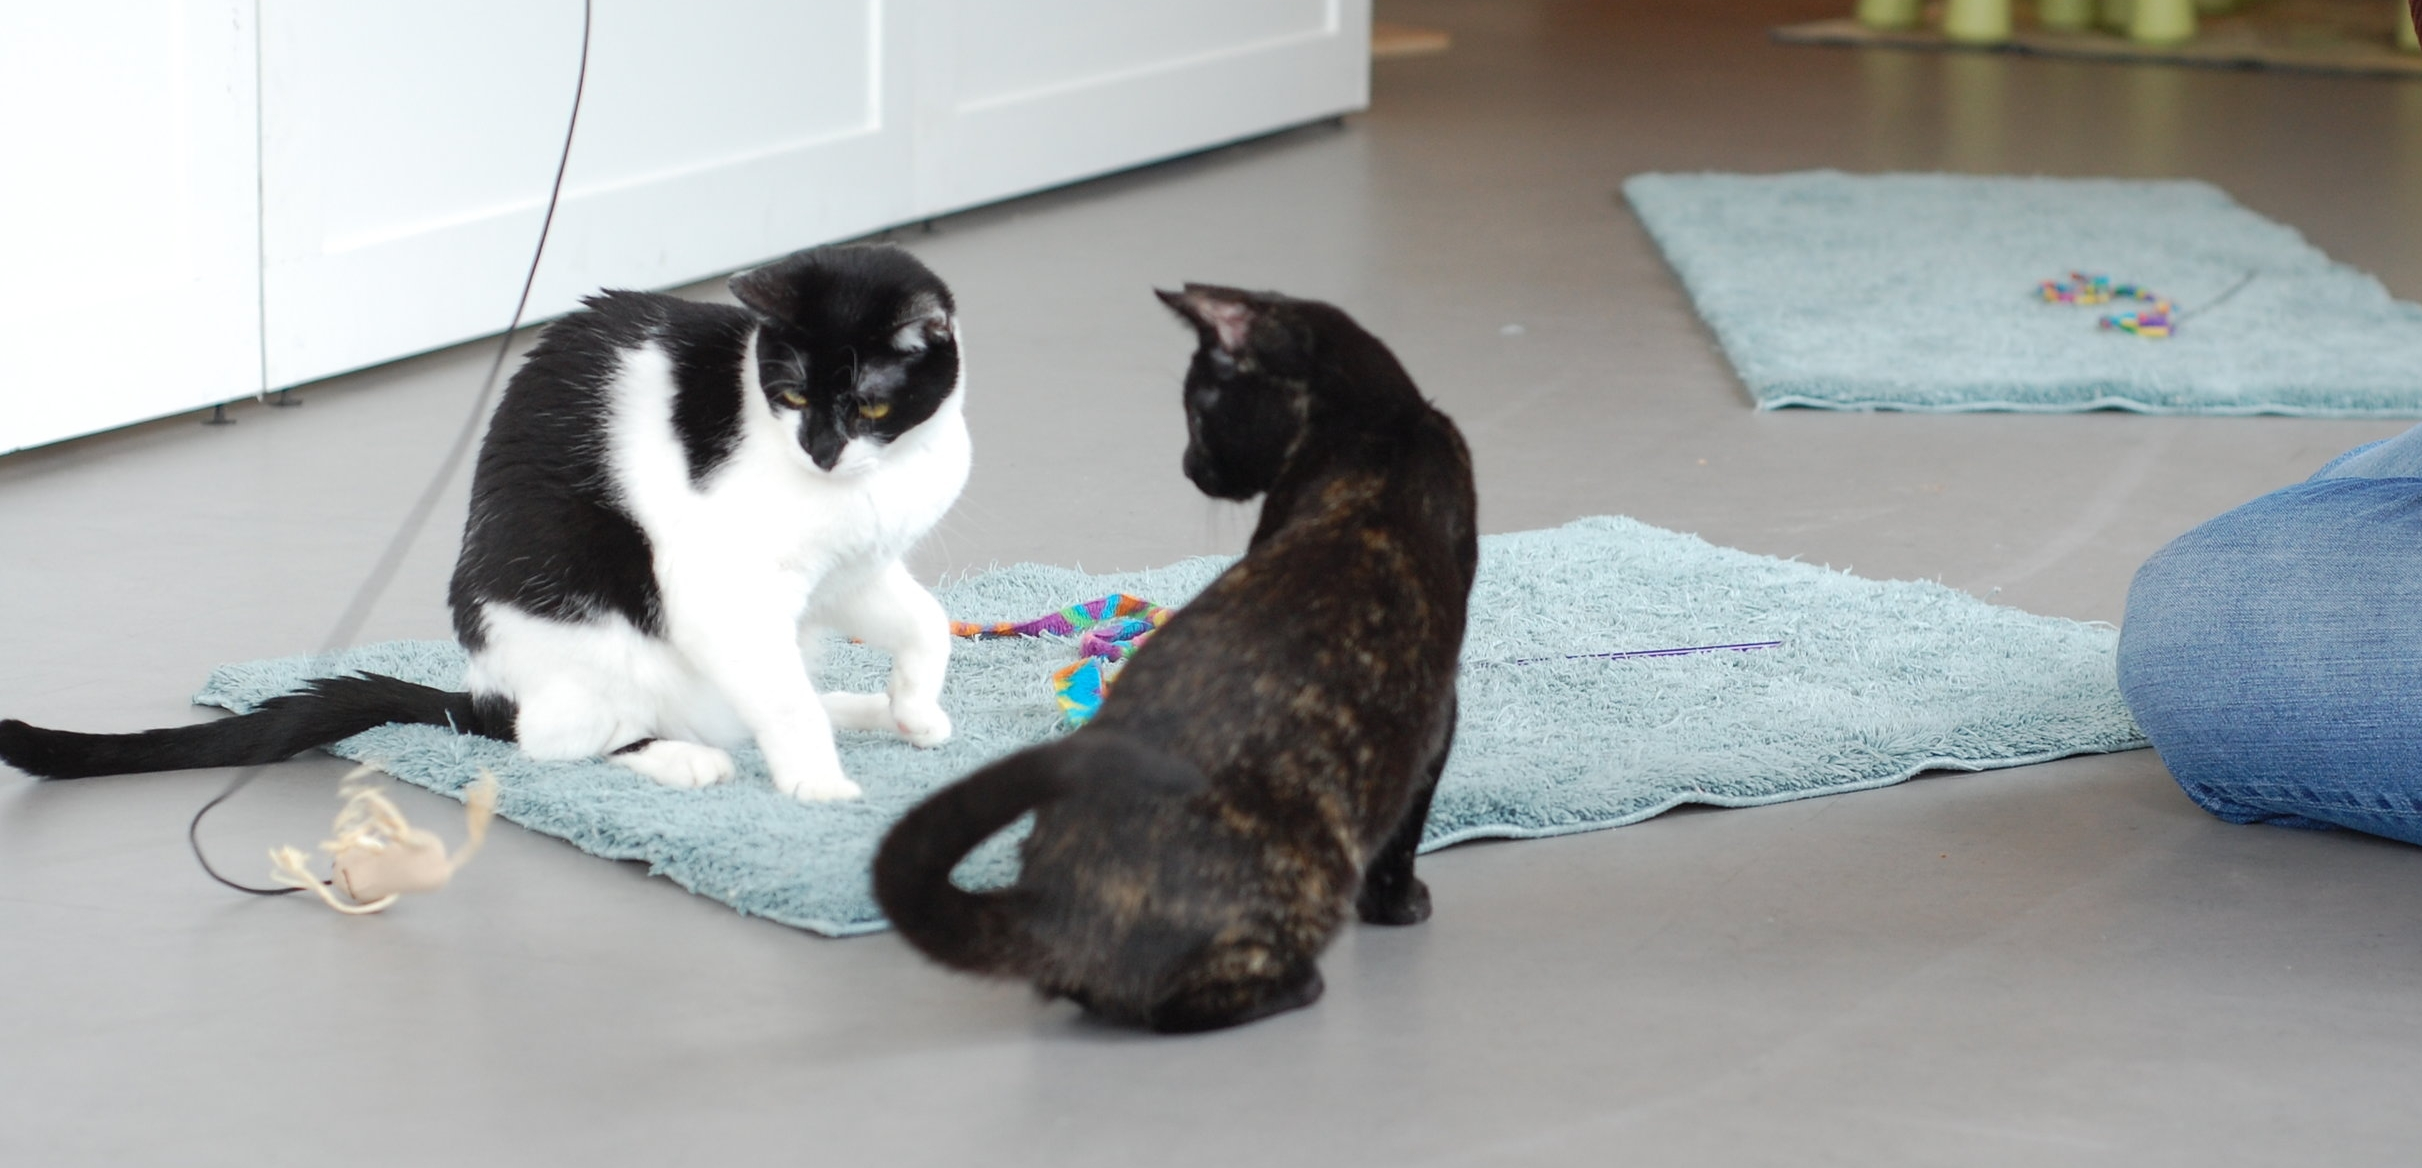 Alaska and Autumn playing with a visitor a few weeks back. Photo by Cathy Niland.